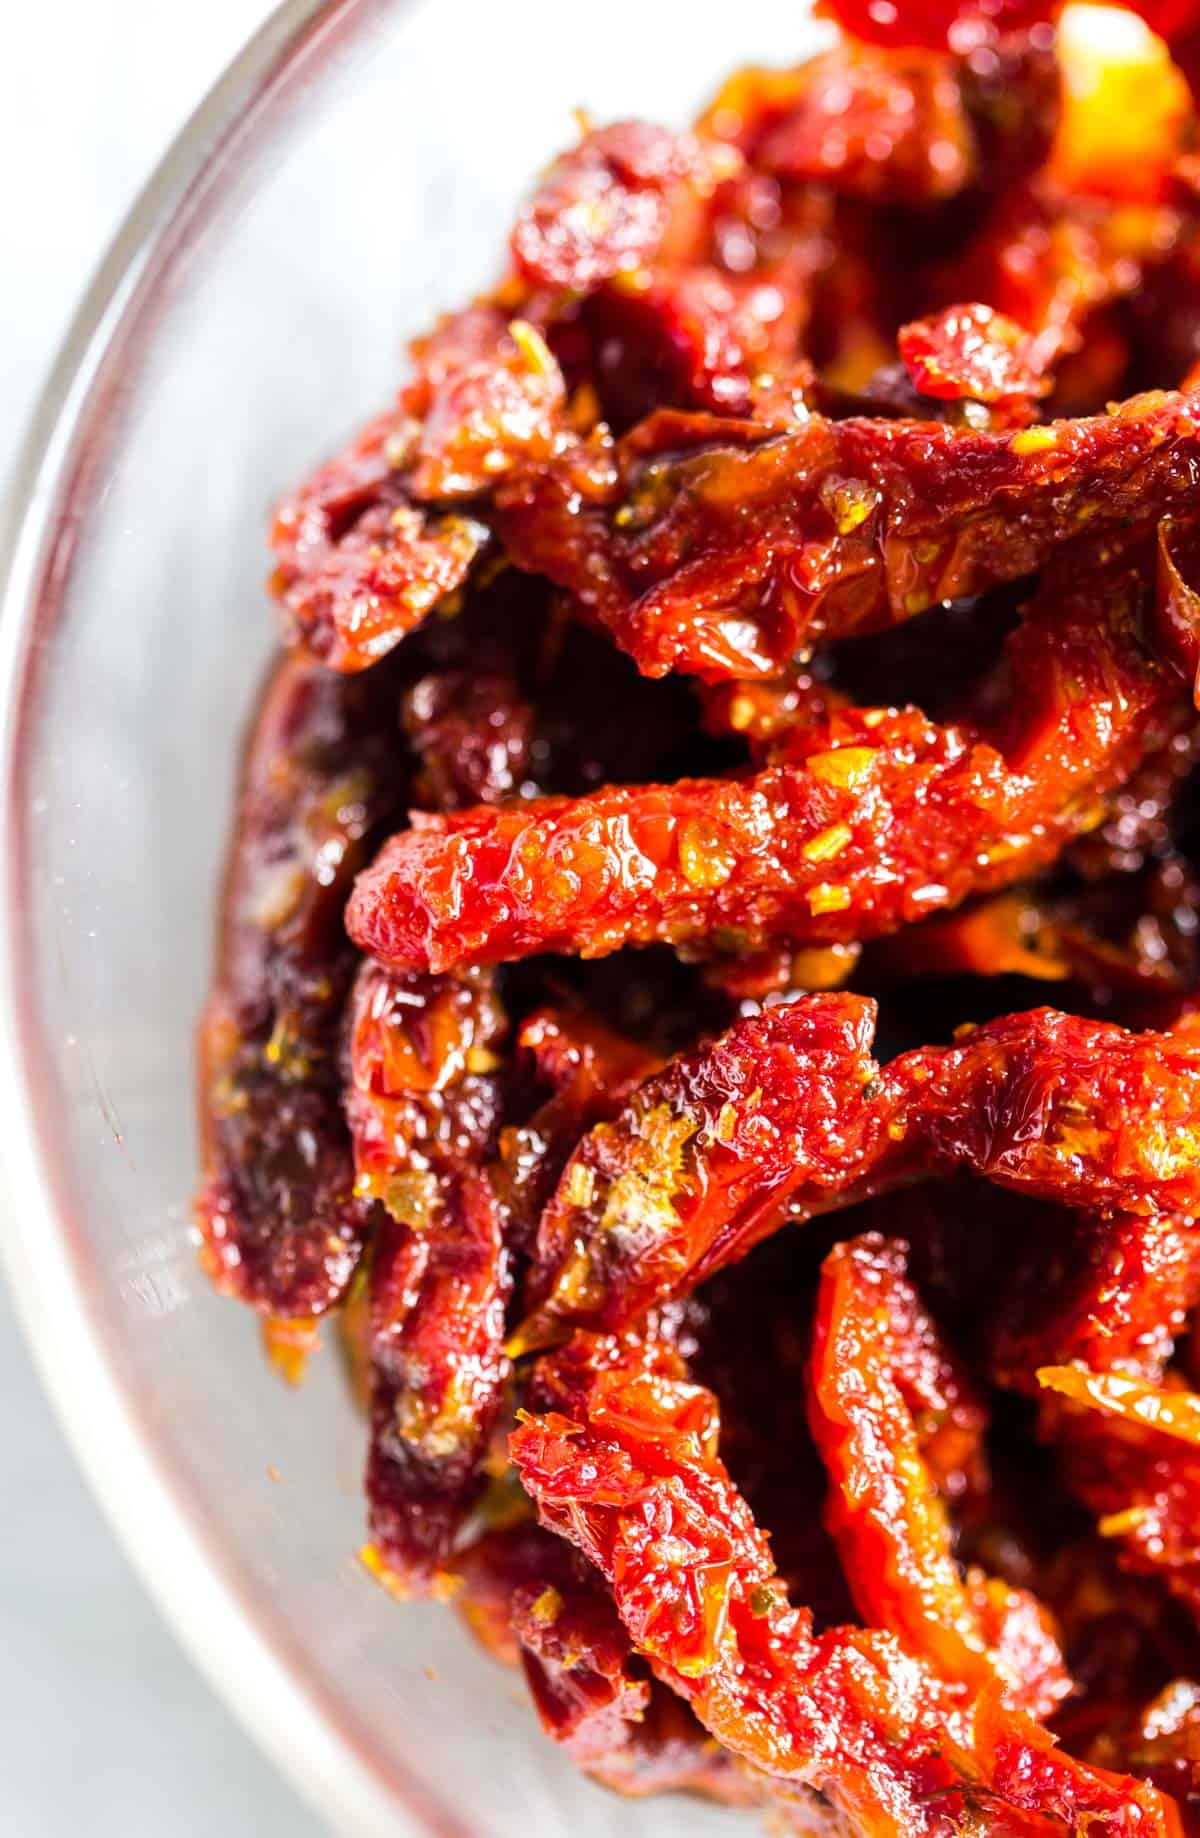 A close-up of bright, red sun-dried tomatoes in oil.